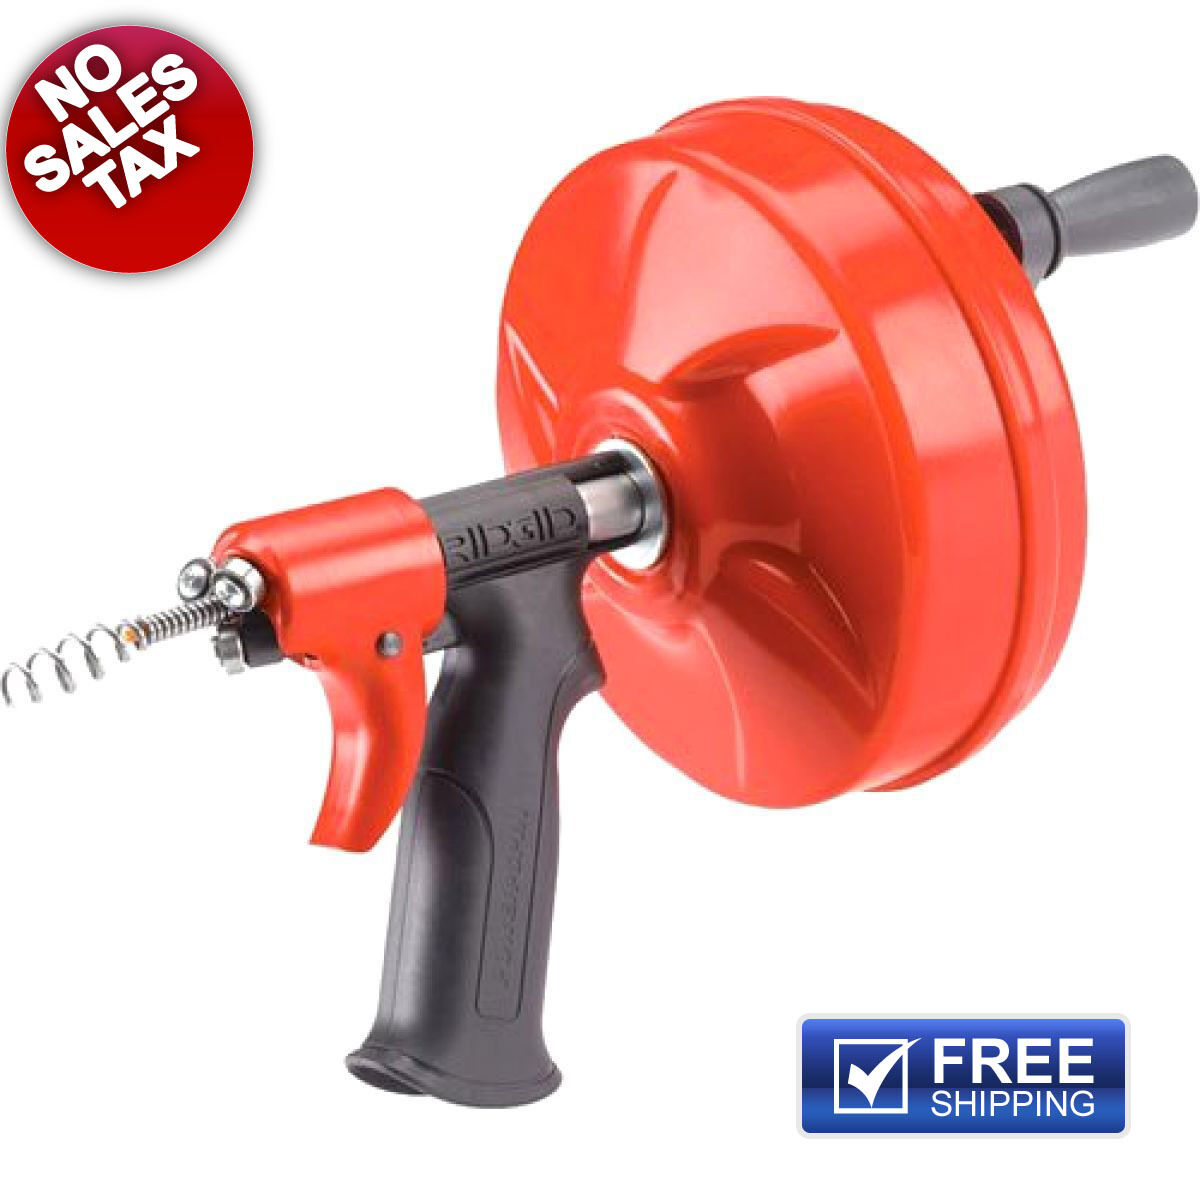 Ridgid Plumbing Power Spin Drain Cleaner Snake Auger Cable